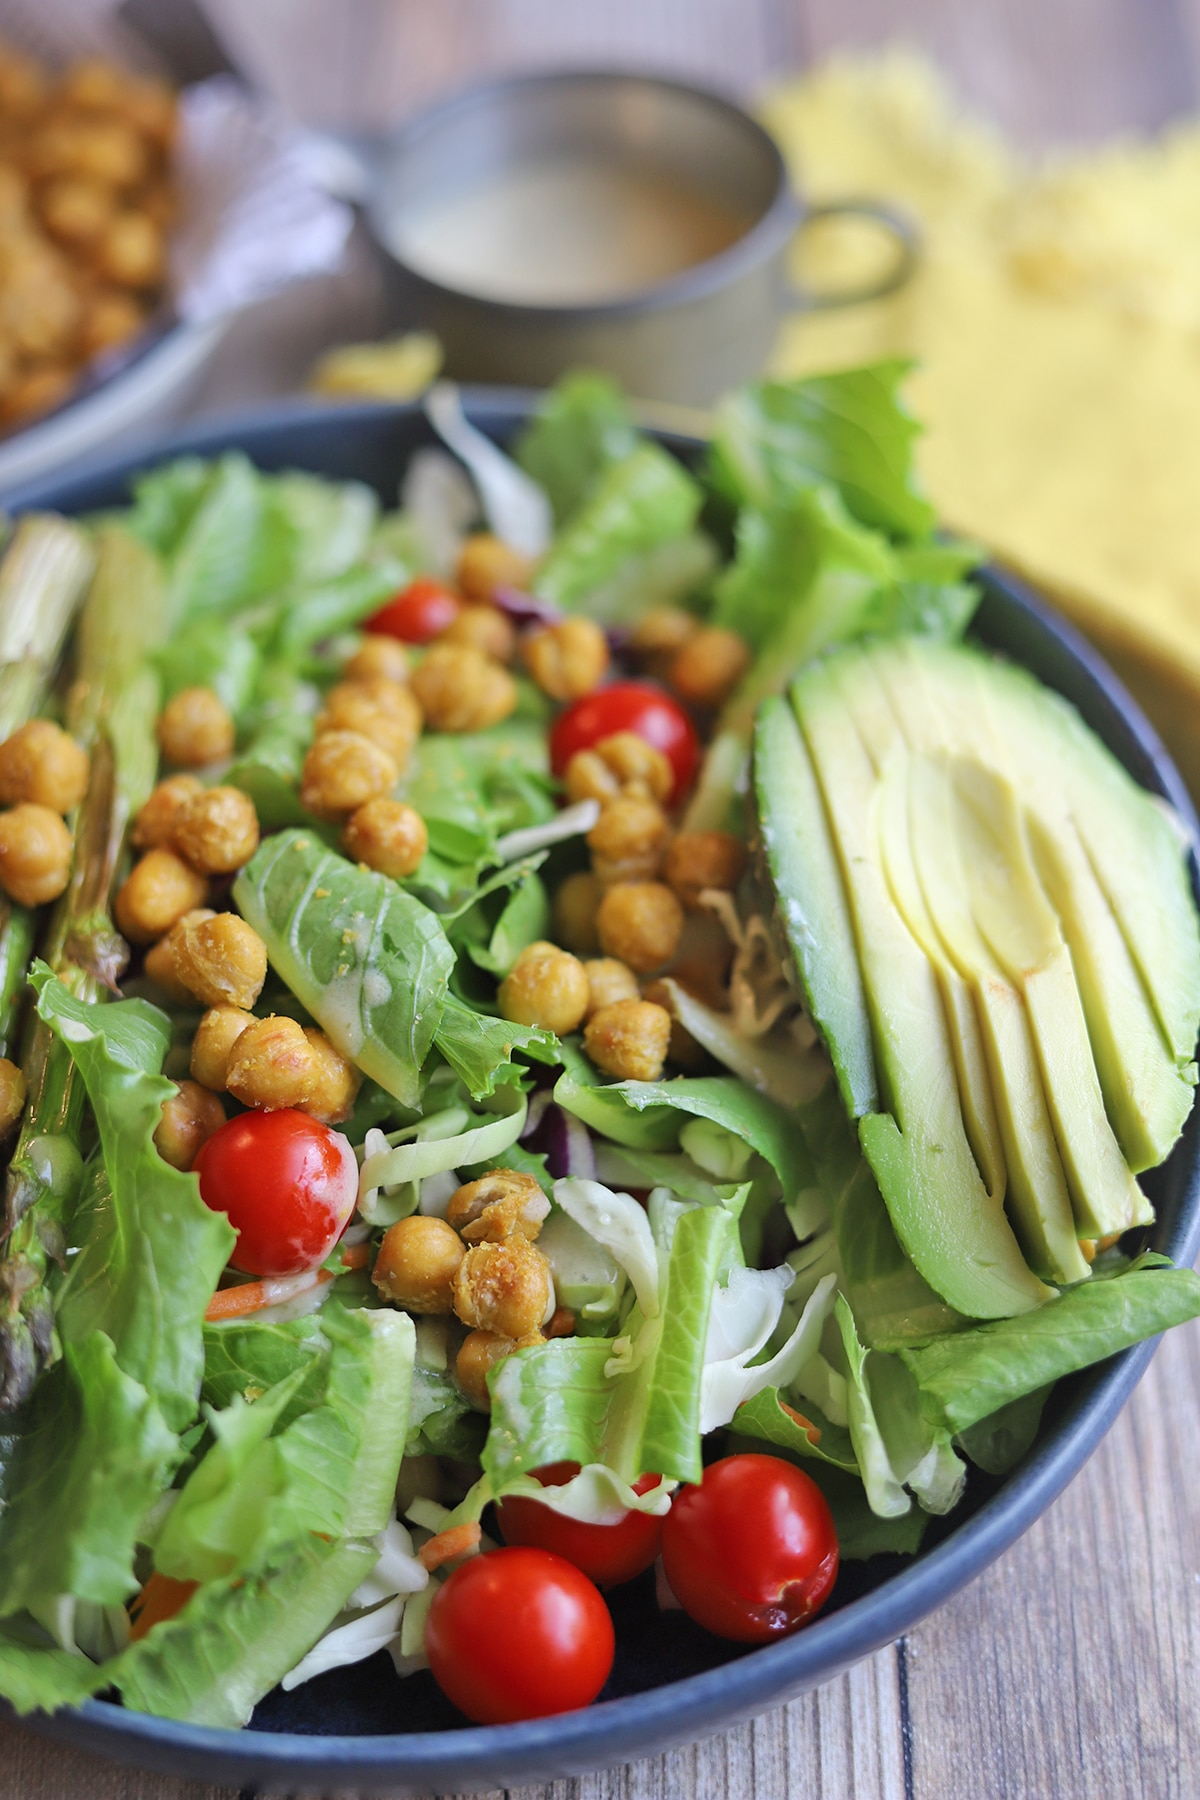 Salad with avocado and roasted chickpeas in blue bowl.